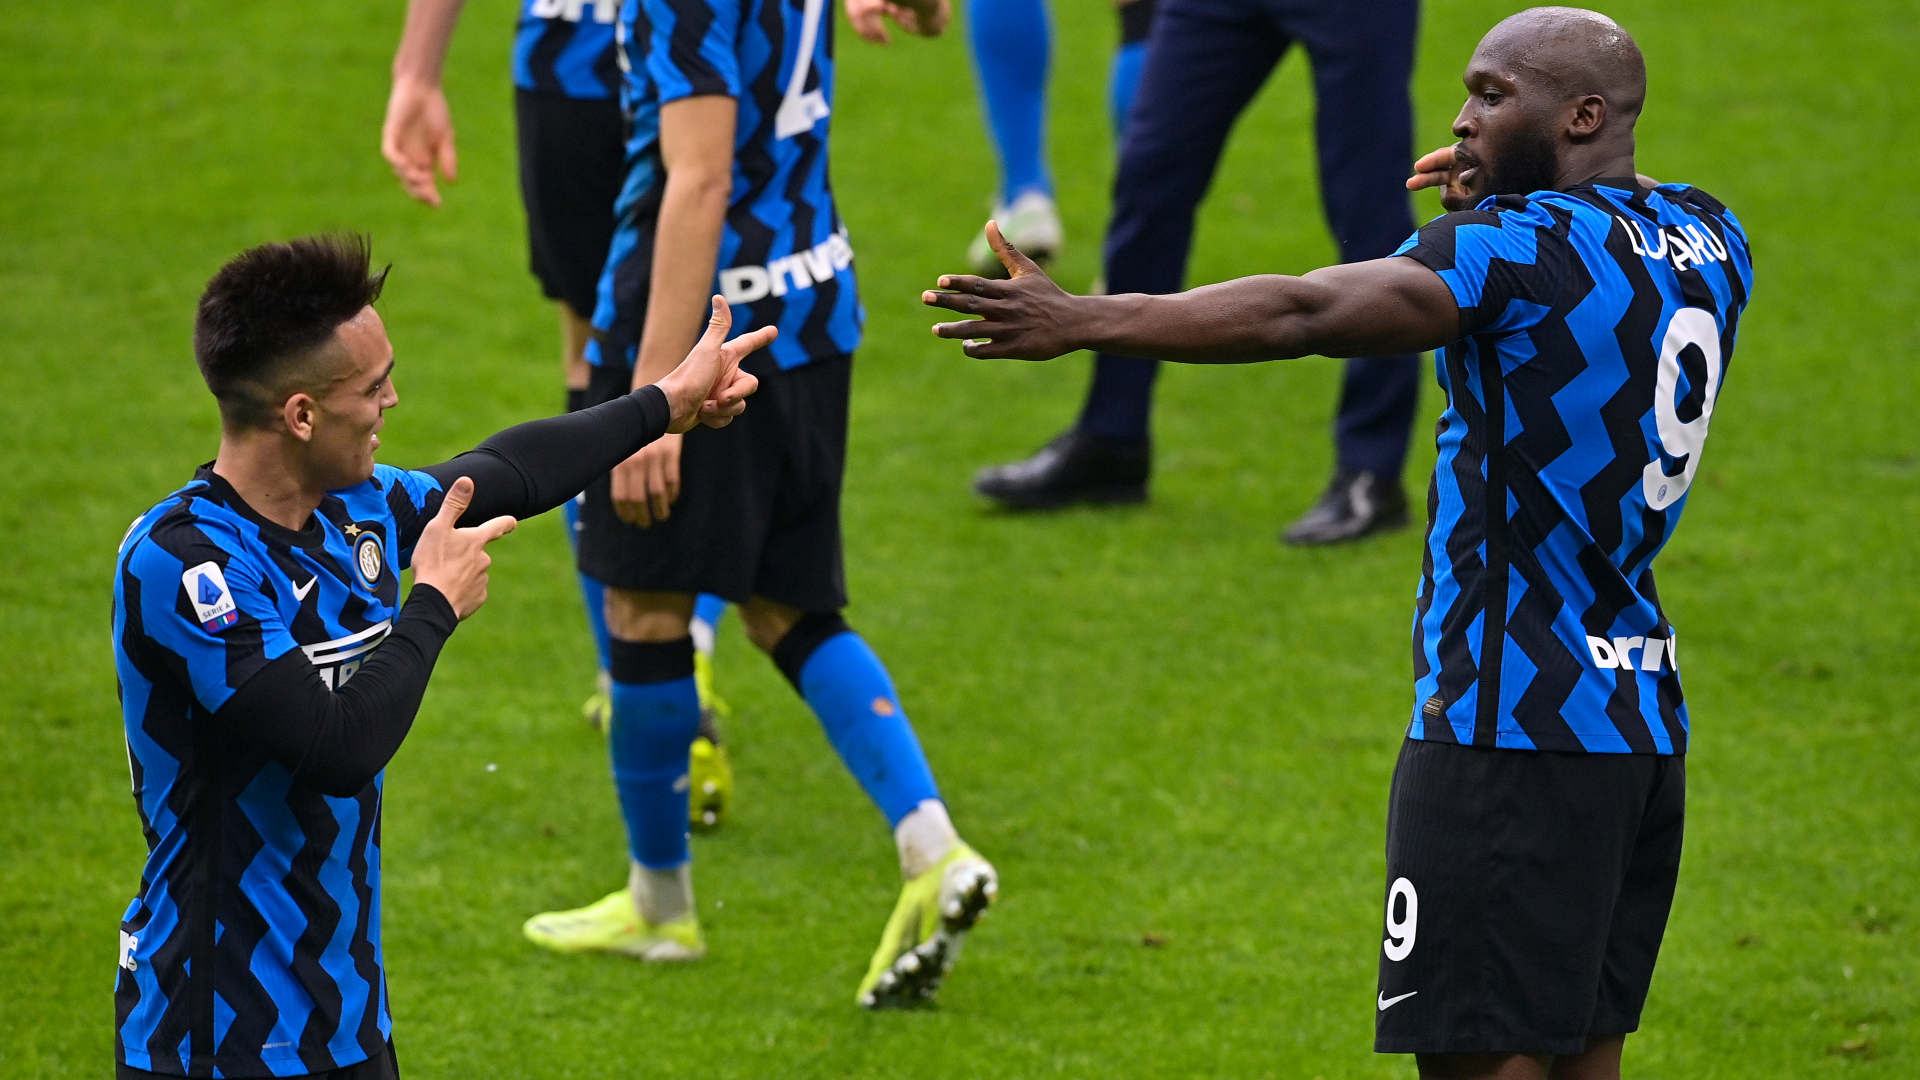 The Kessie of death! Milan optimism misplaced as Inter seize control of Scudetto